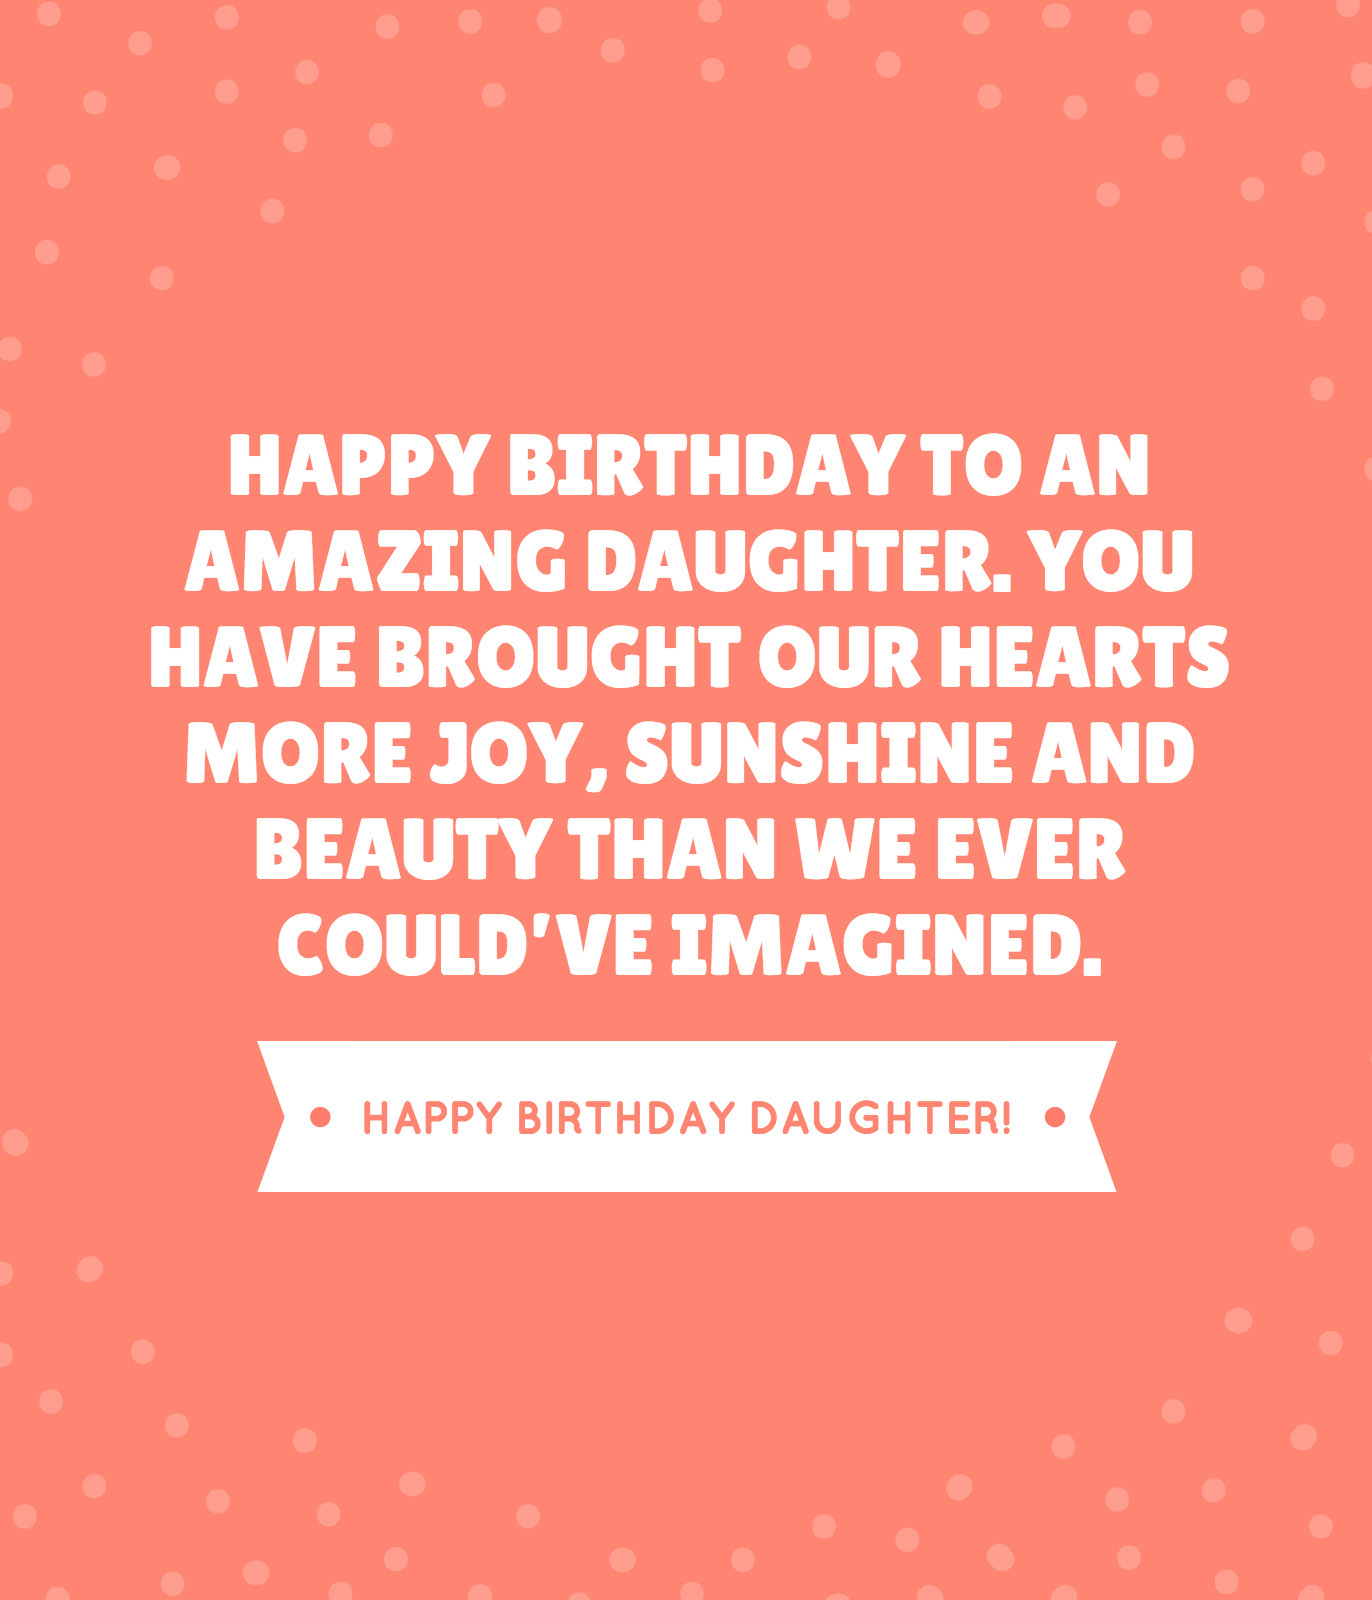 Best ideas about Funny Birthday Wishes For Mom From Daughter . Save or Pin 35 Beautiful Ways to Say Happy Birthday Daughter Unique Now.